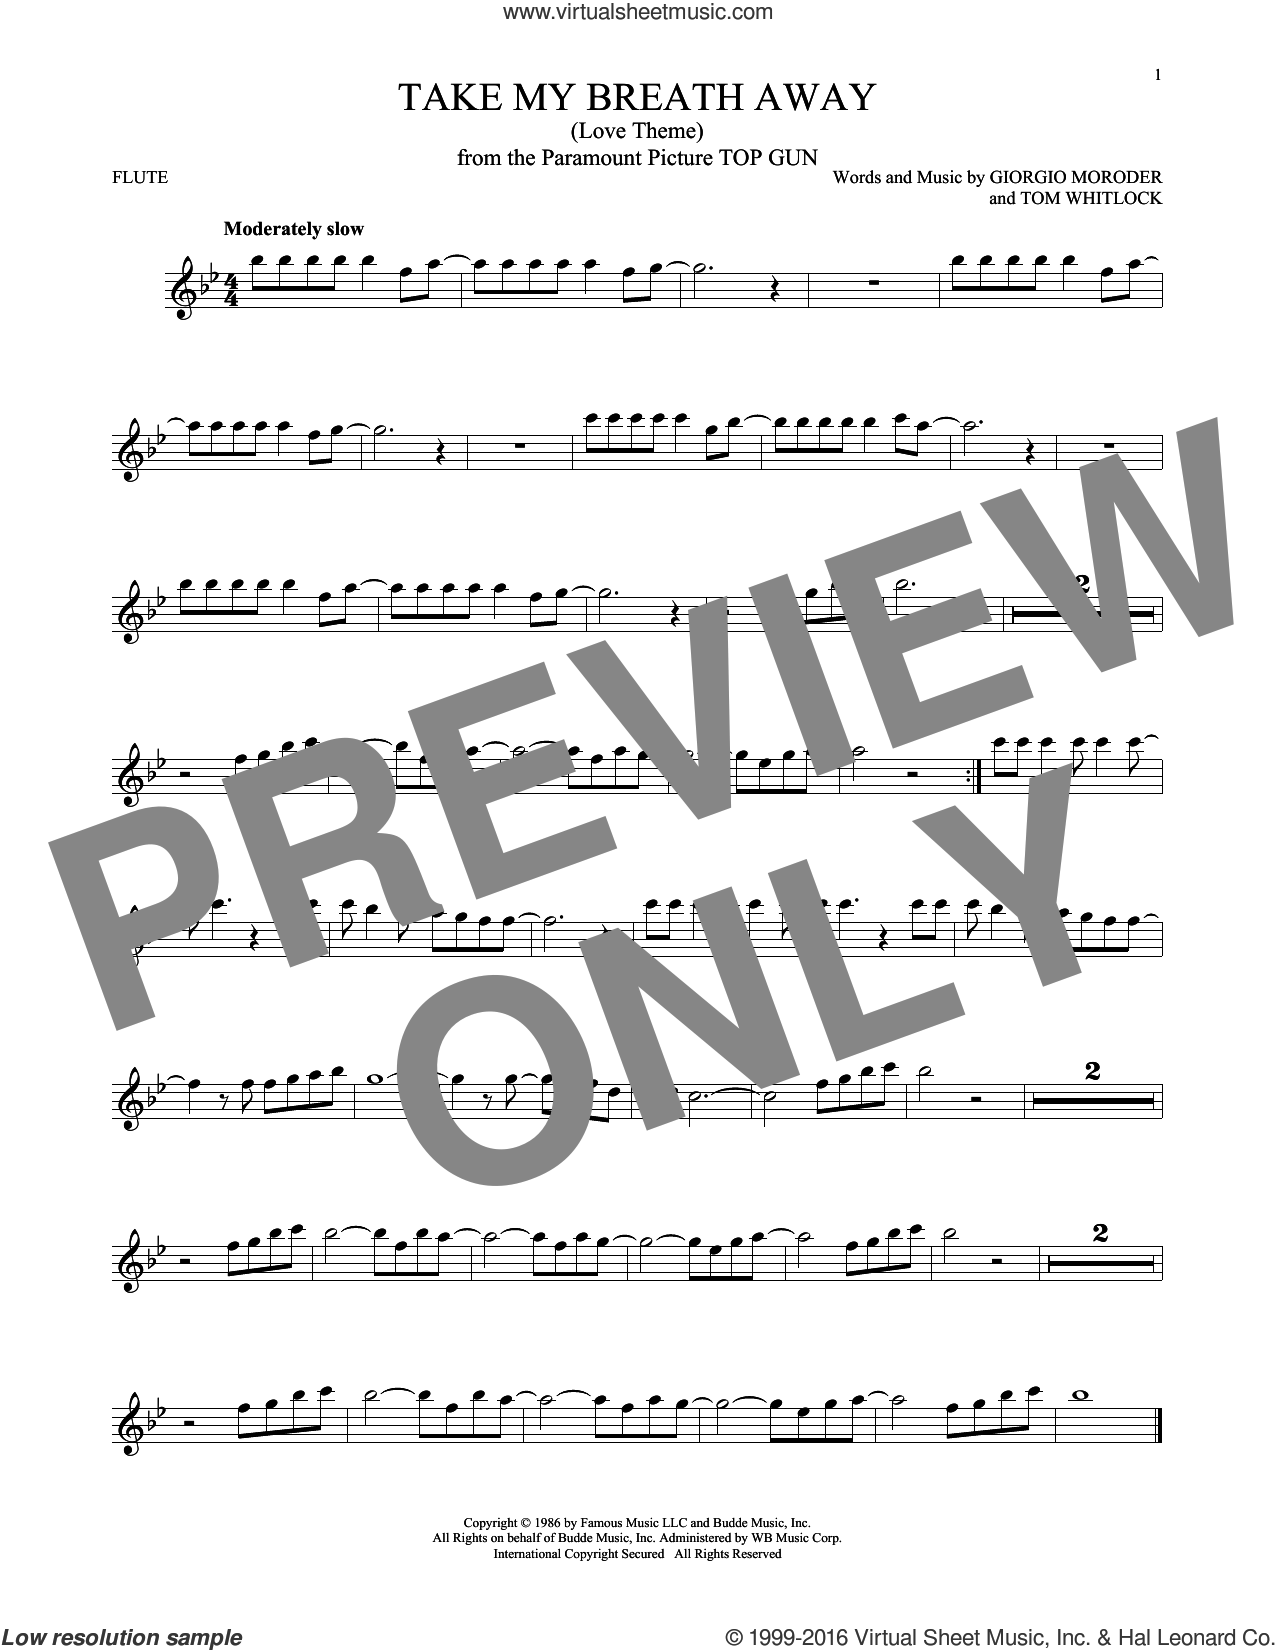 Take My Breath Away (Love Theme) sheet music for flute solo by Giorgio Moroder, Irving Berlin, Jessica Simpson and Tom Whitlock, intermediate skill level